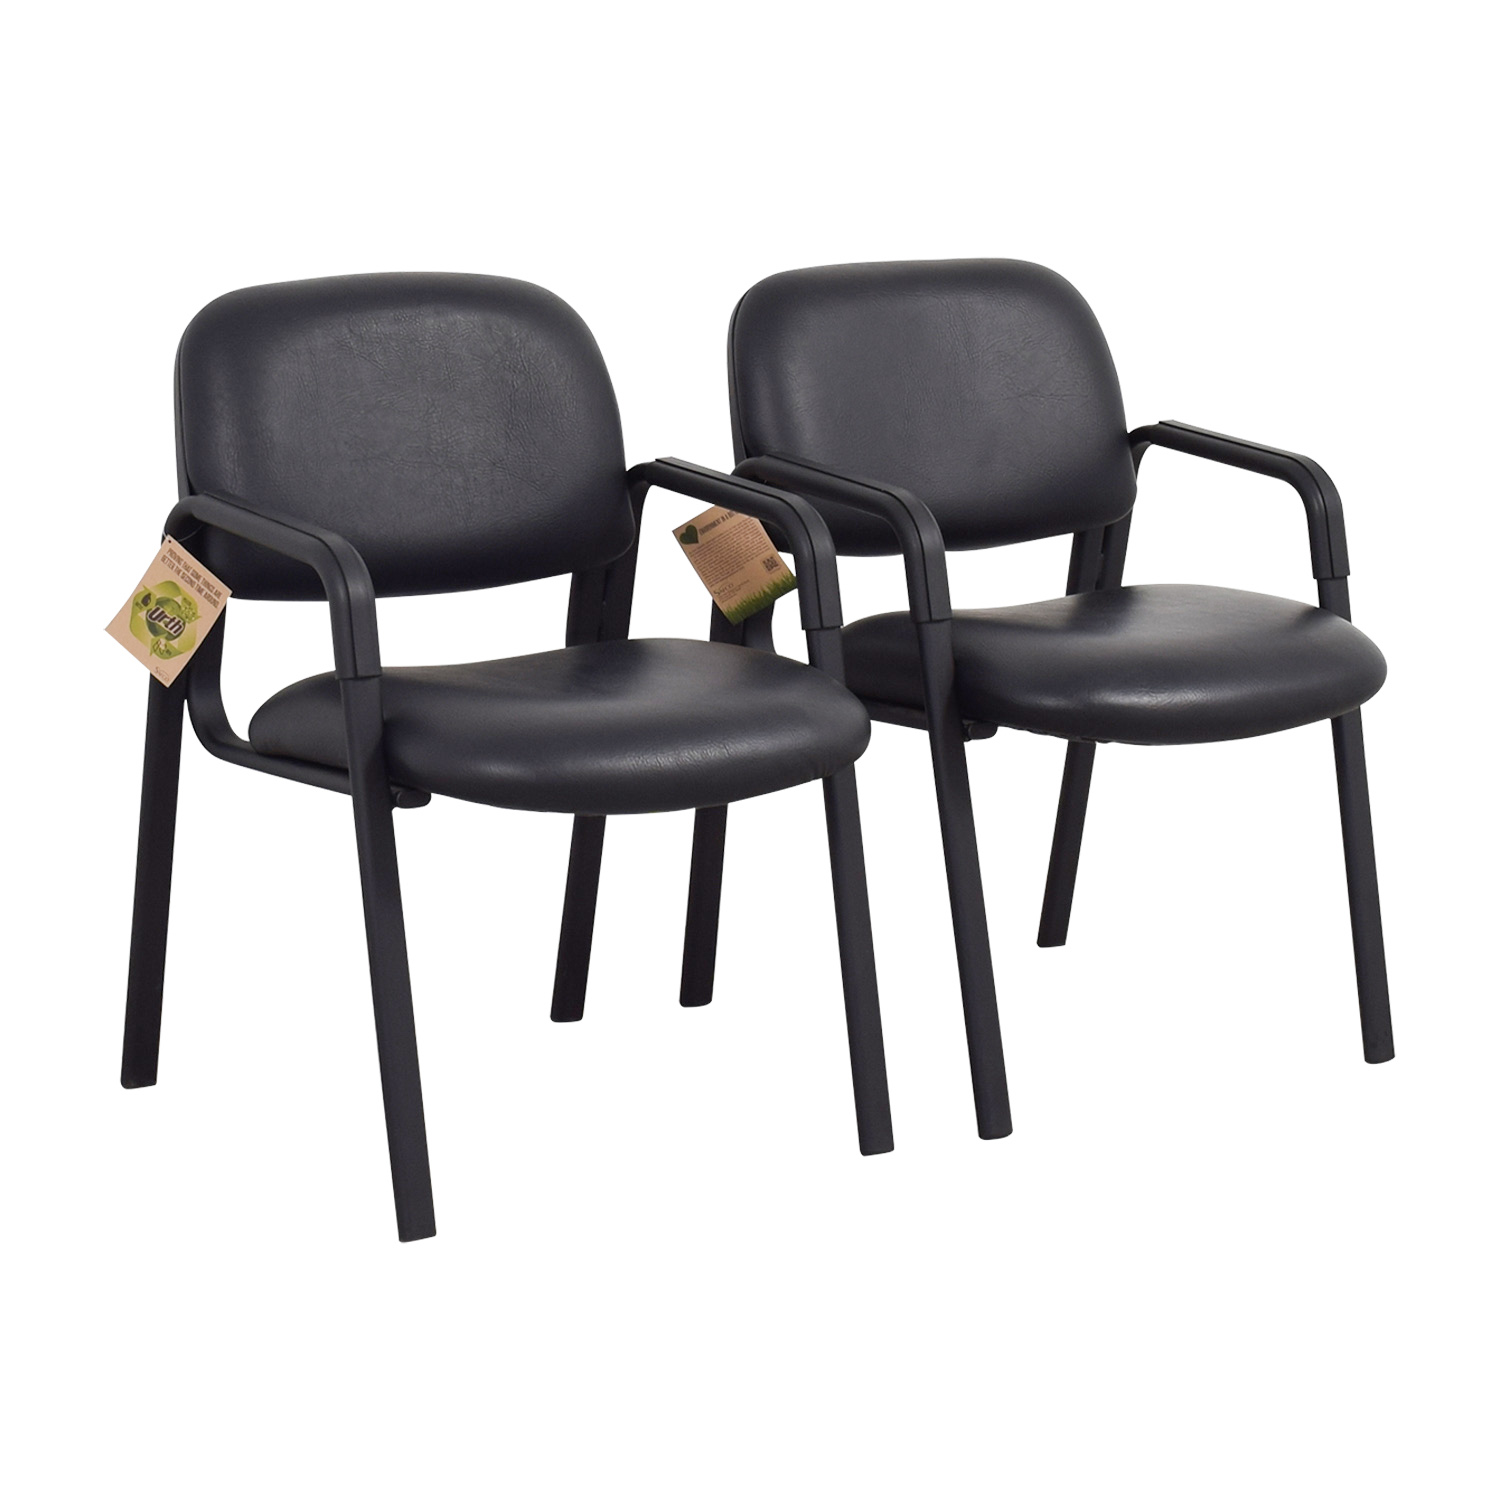 Urth Cava Black Leather Chairs Urth